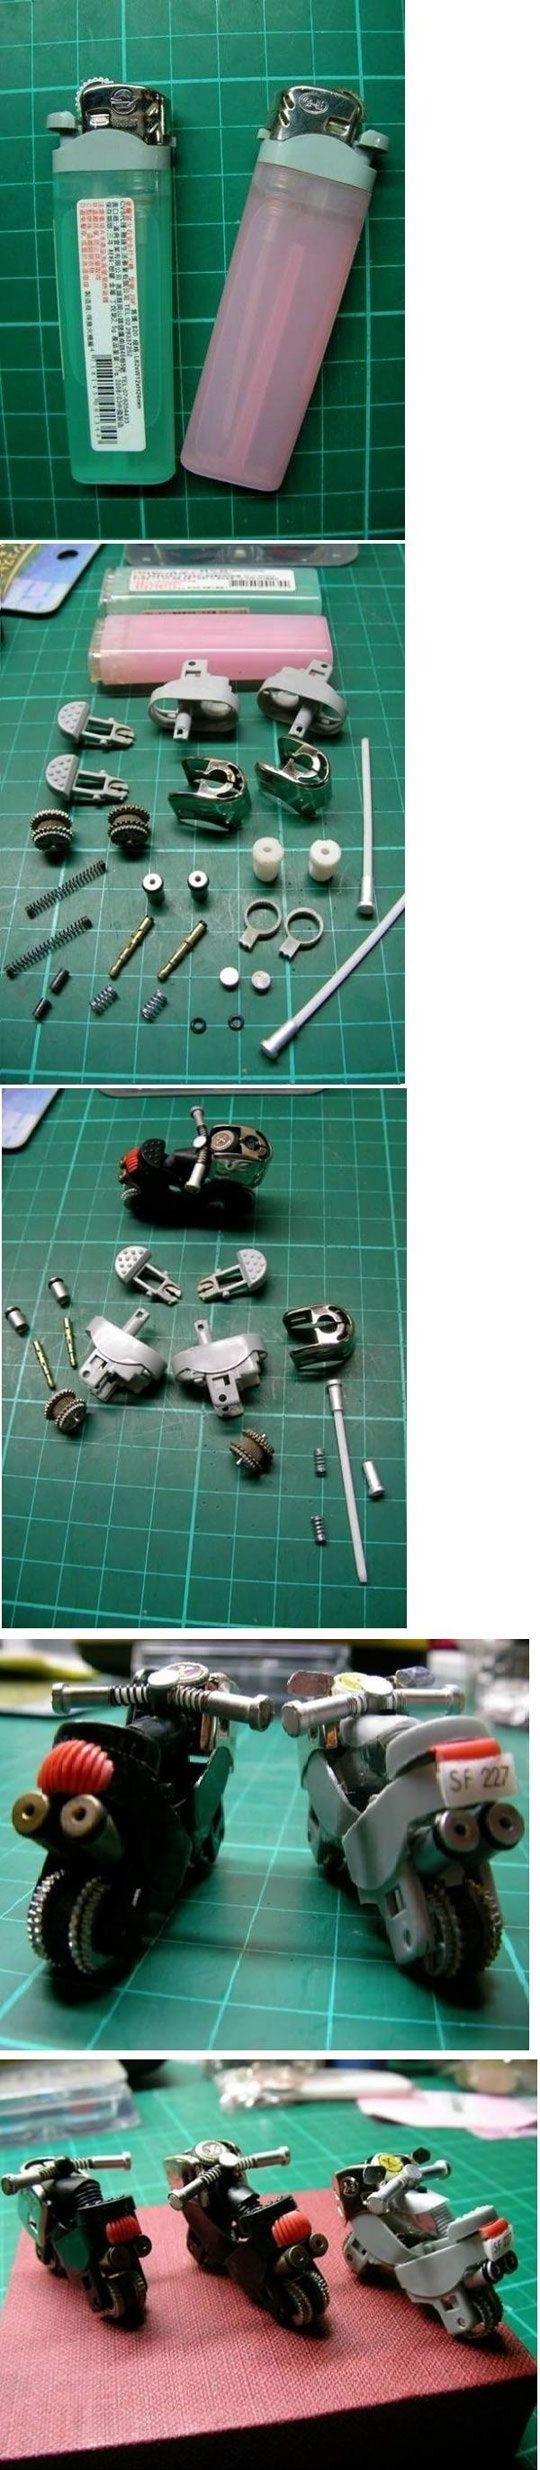 Cool miniature motorcycles made from old lighters.